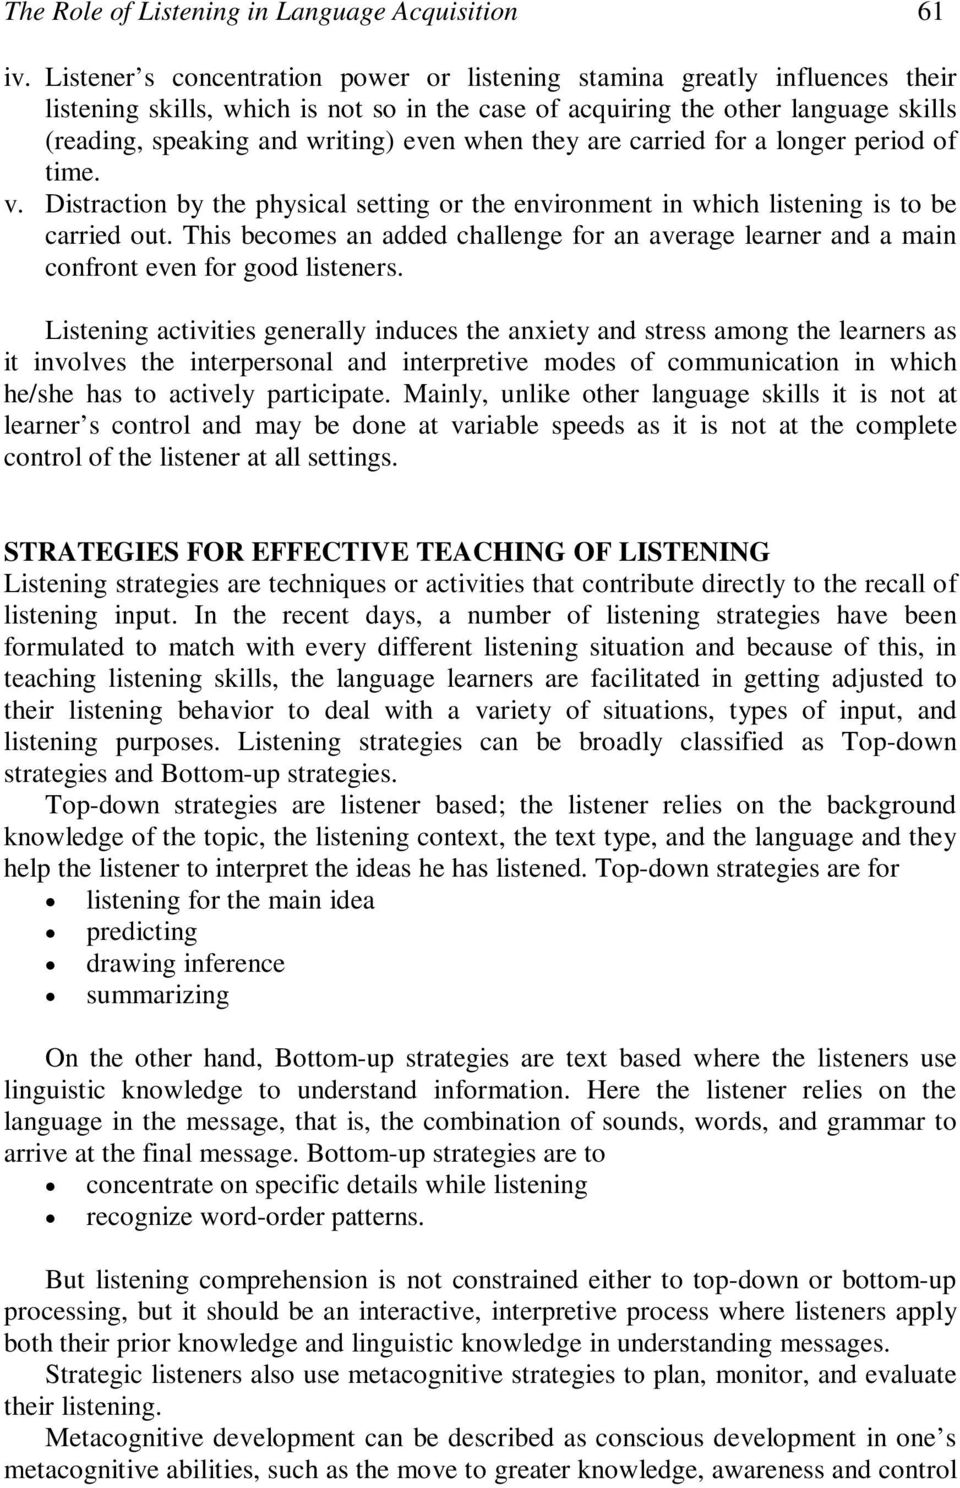 essay on concentration listening skills essay the role of listening in language acquisition the challenges